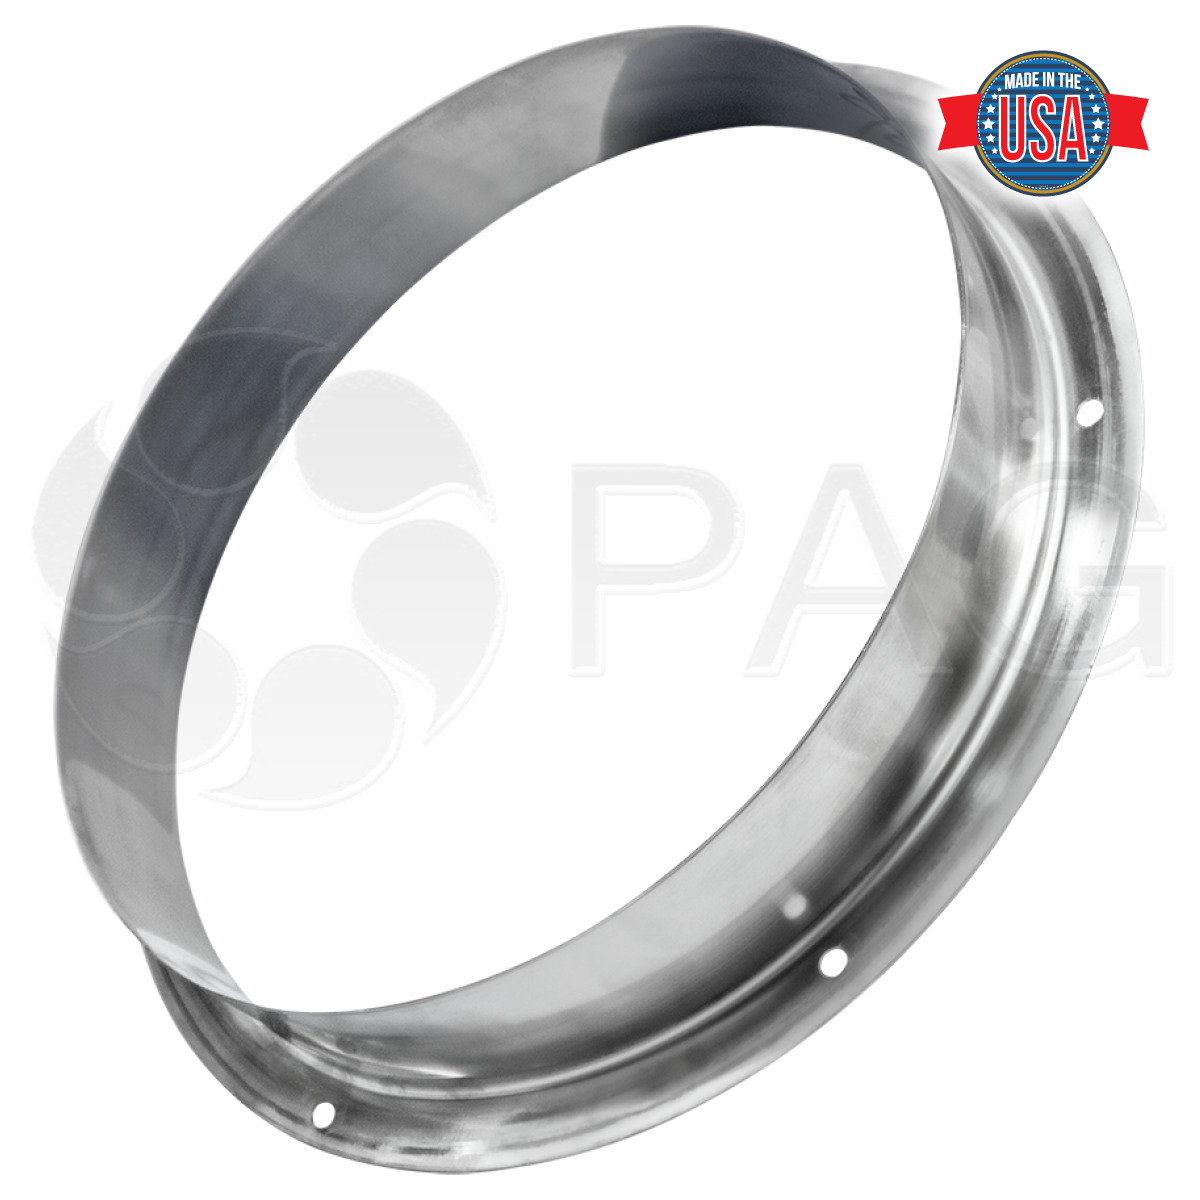 Stainless steel flange for KBIO and KBA and KBP machines